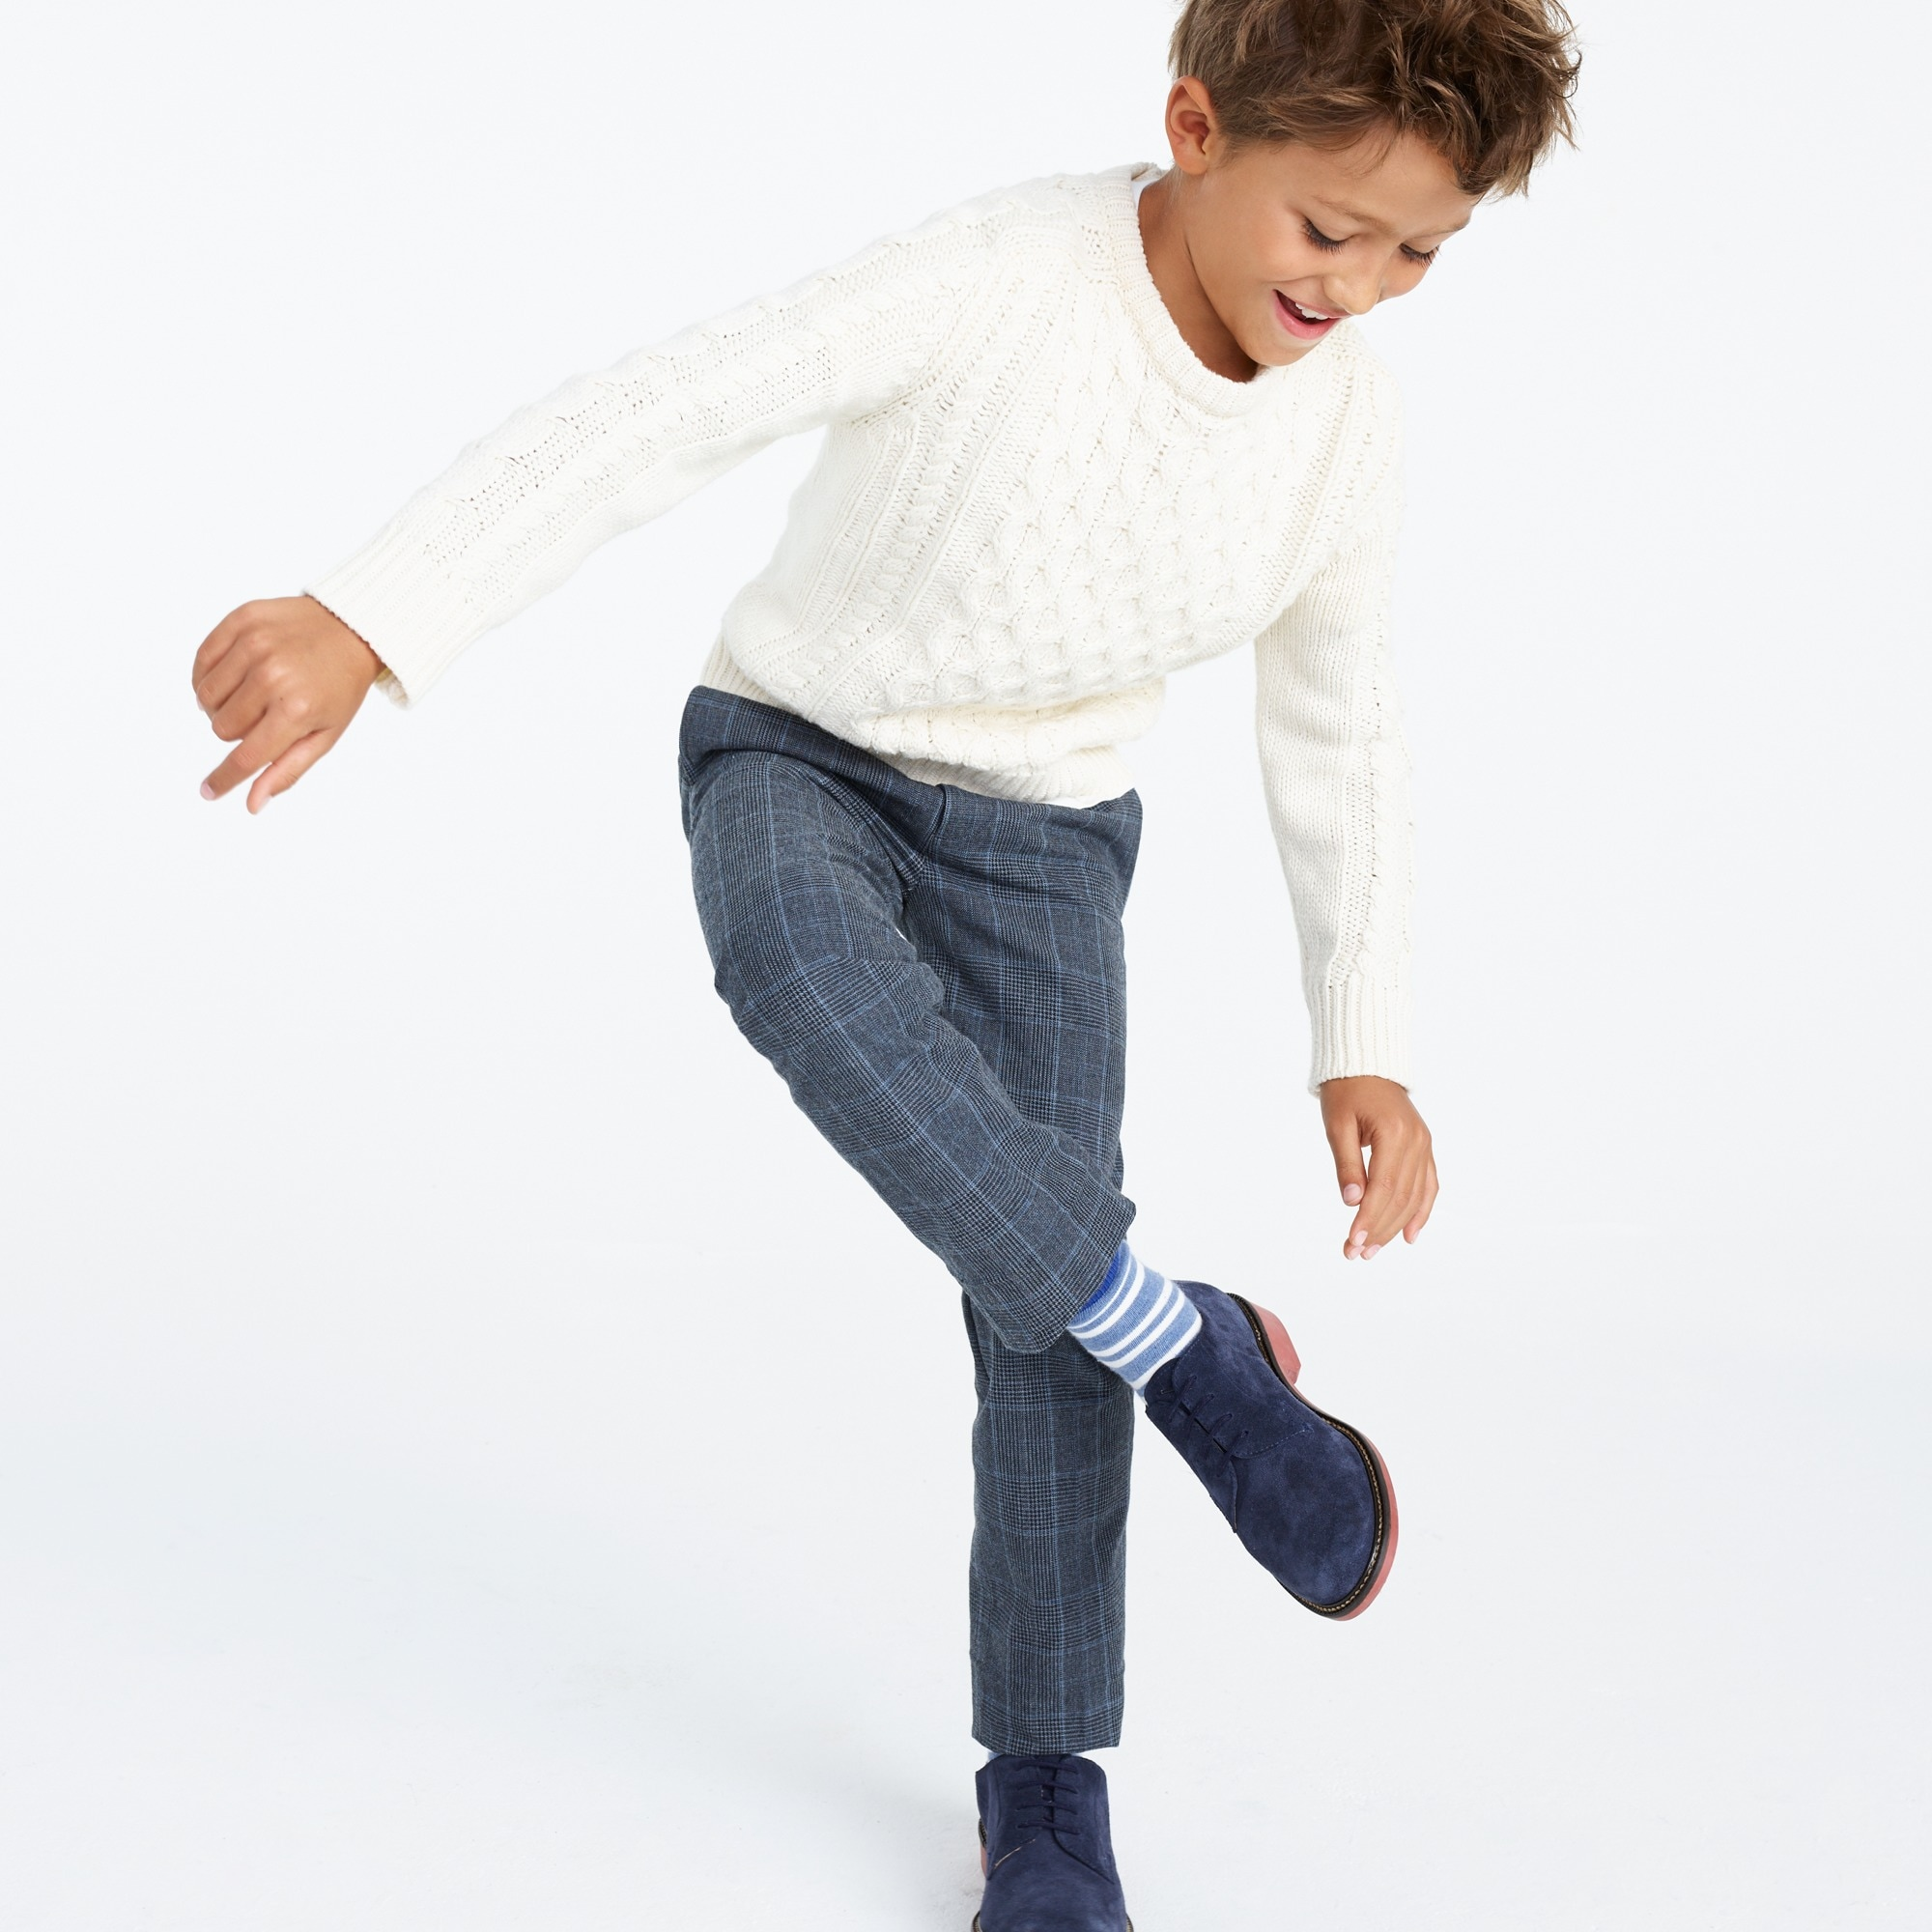 boys' trousers in glen plaid : boy dress pants